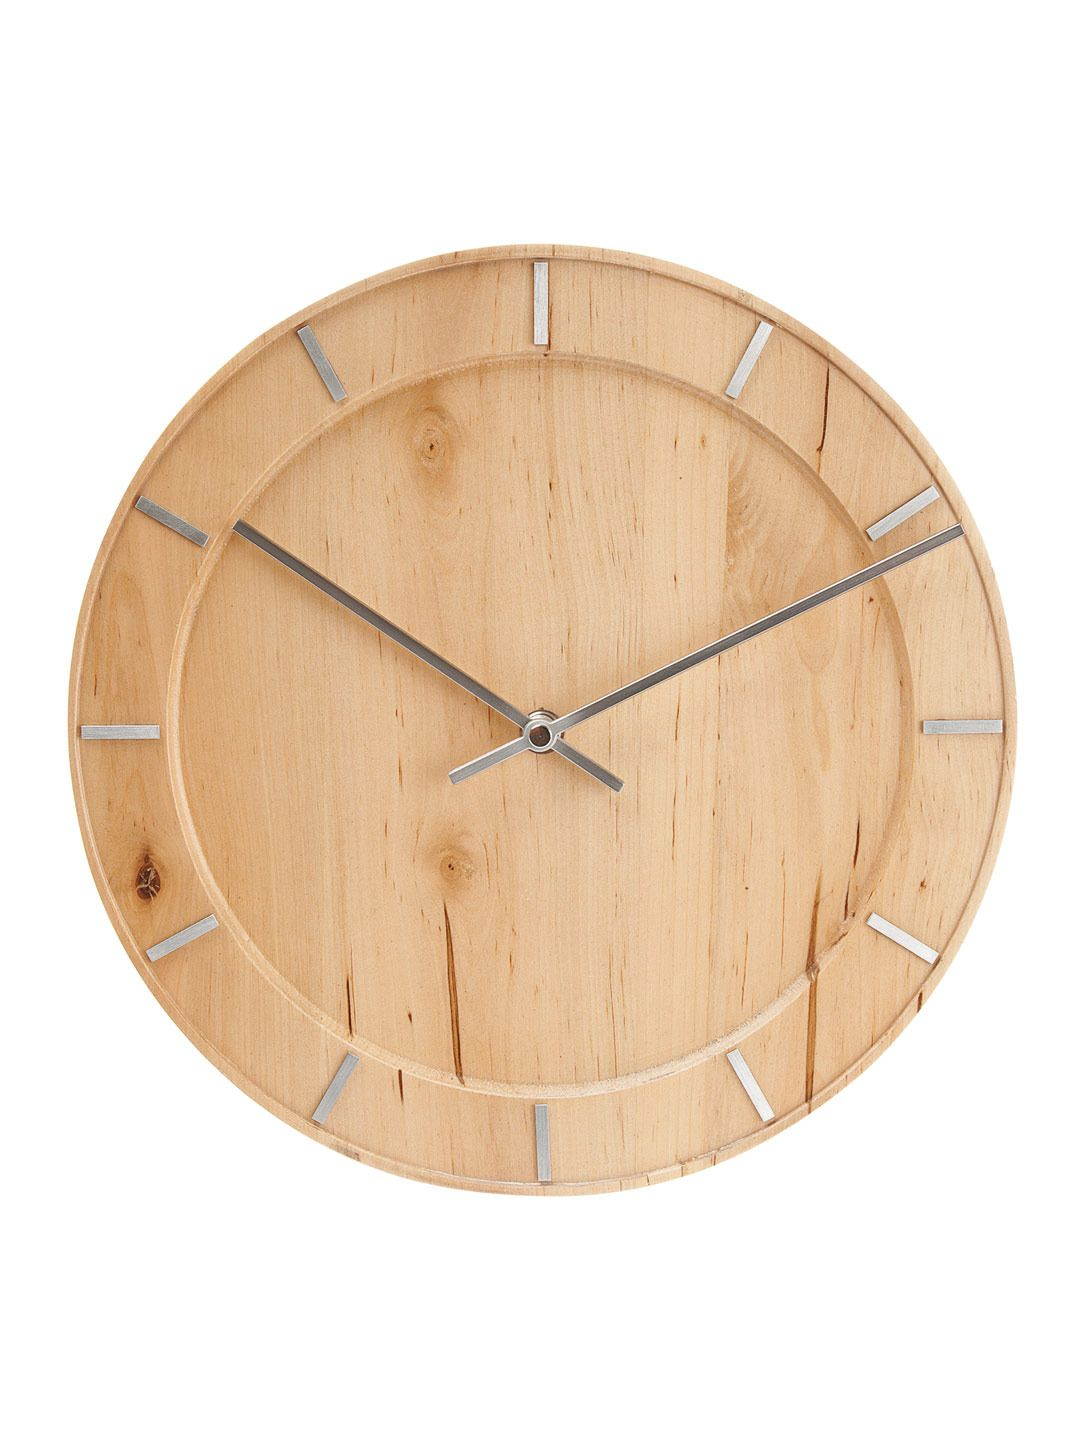 Natural Wood Wall Clock by Karlsson by Present Time at Gilt | House ...